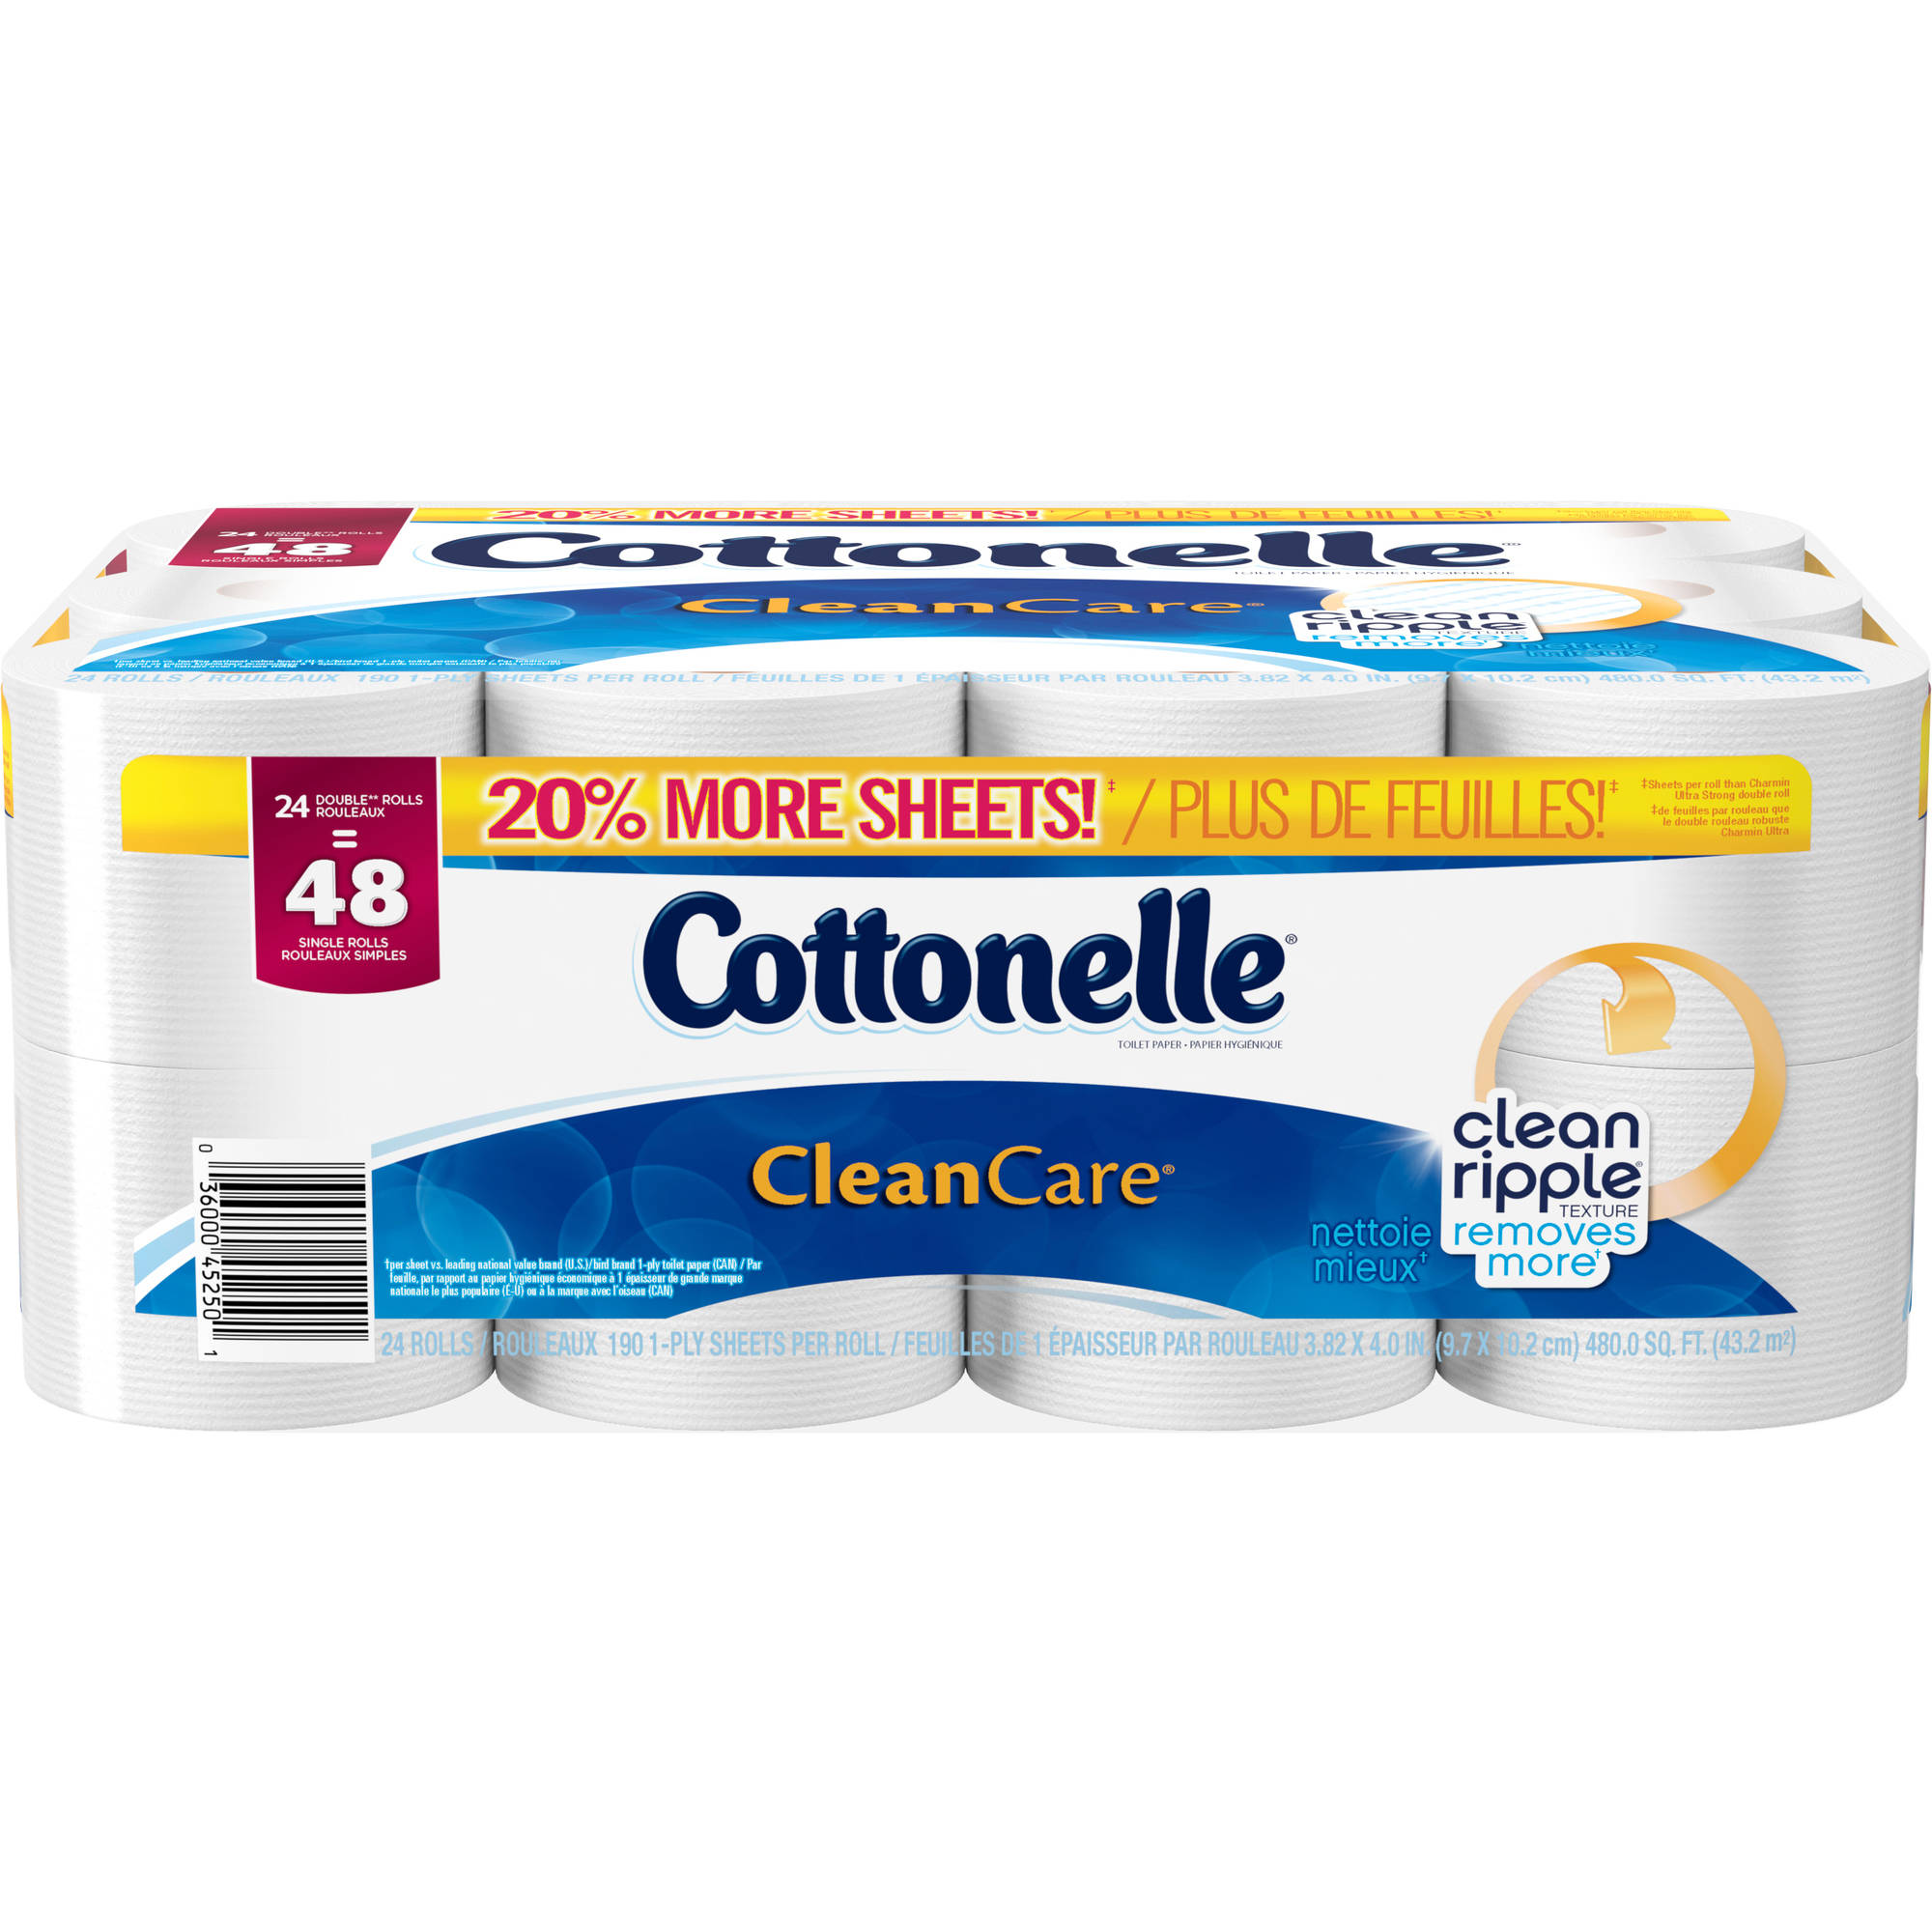 Cottonelle Clean Care Double Roll Toilet Paper, 190 sheets, 24 rolls